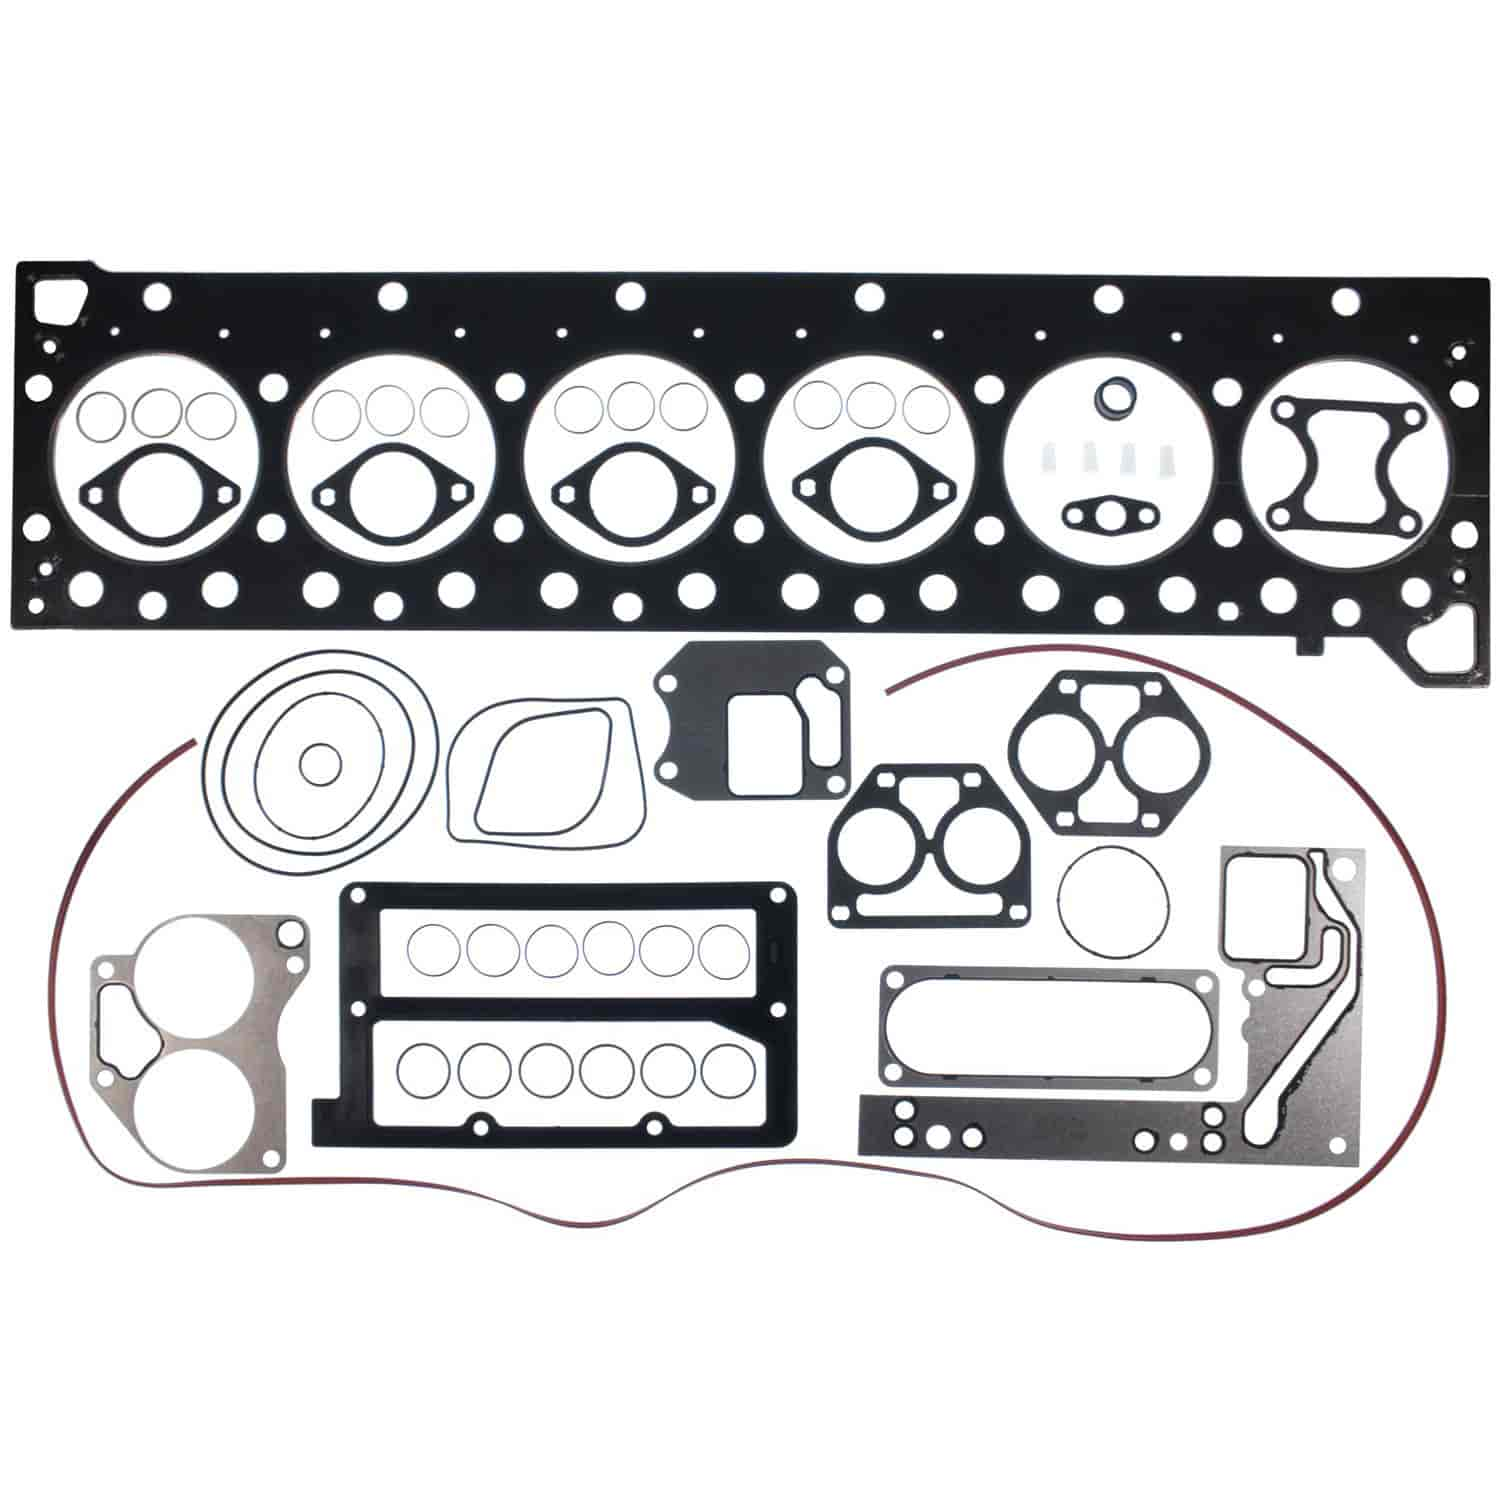 Clevite Mahle Hs Head Set For Cummins Isx Cylinder